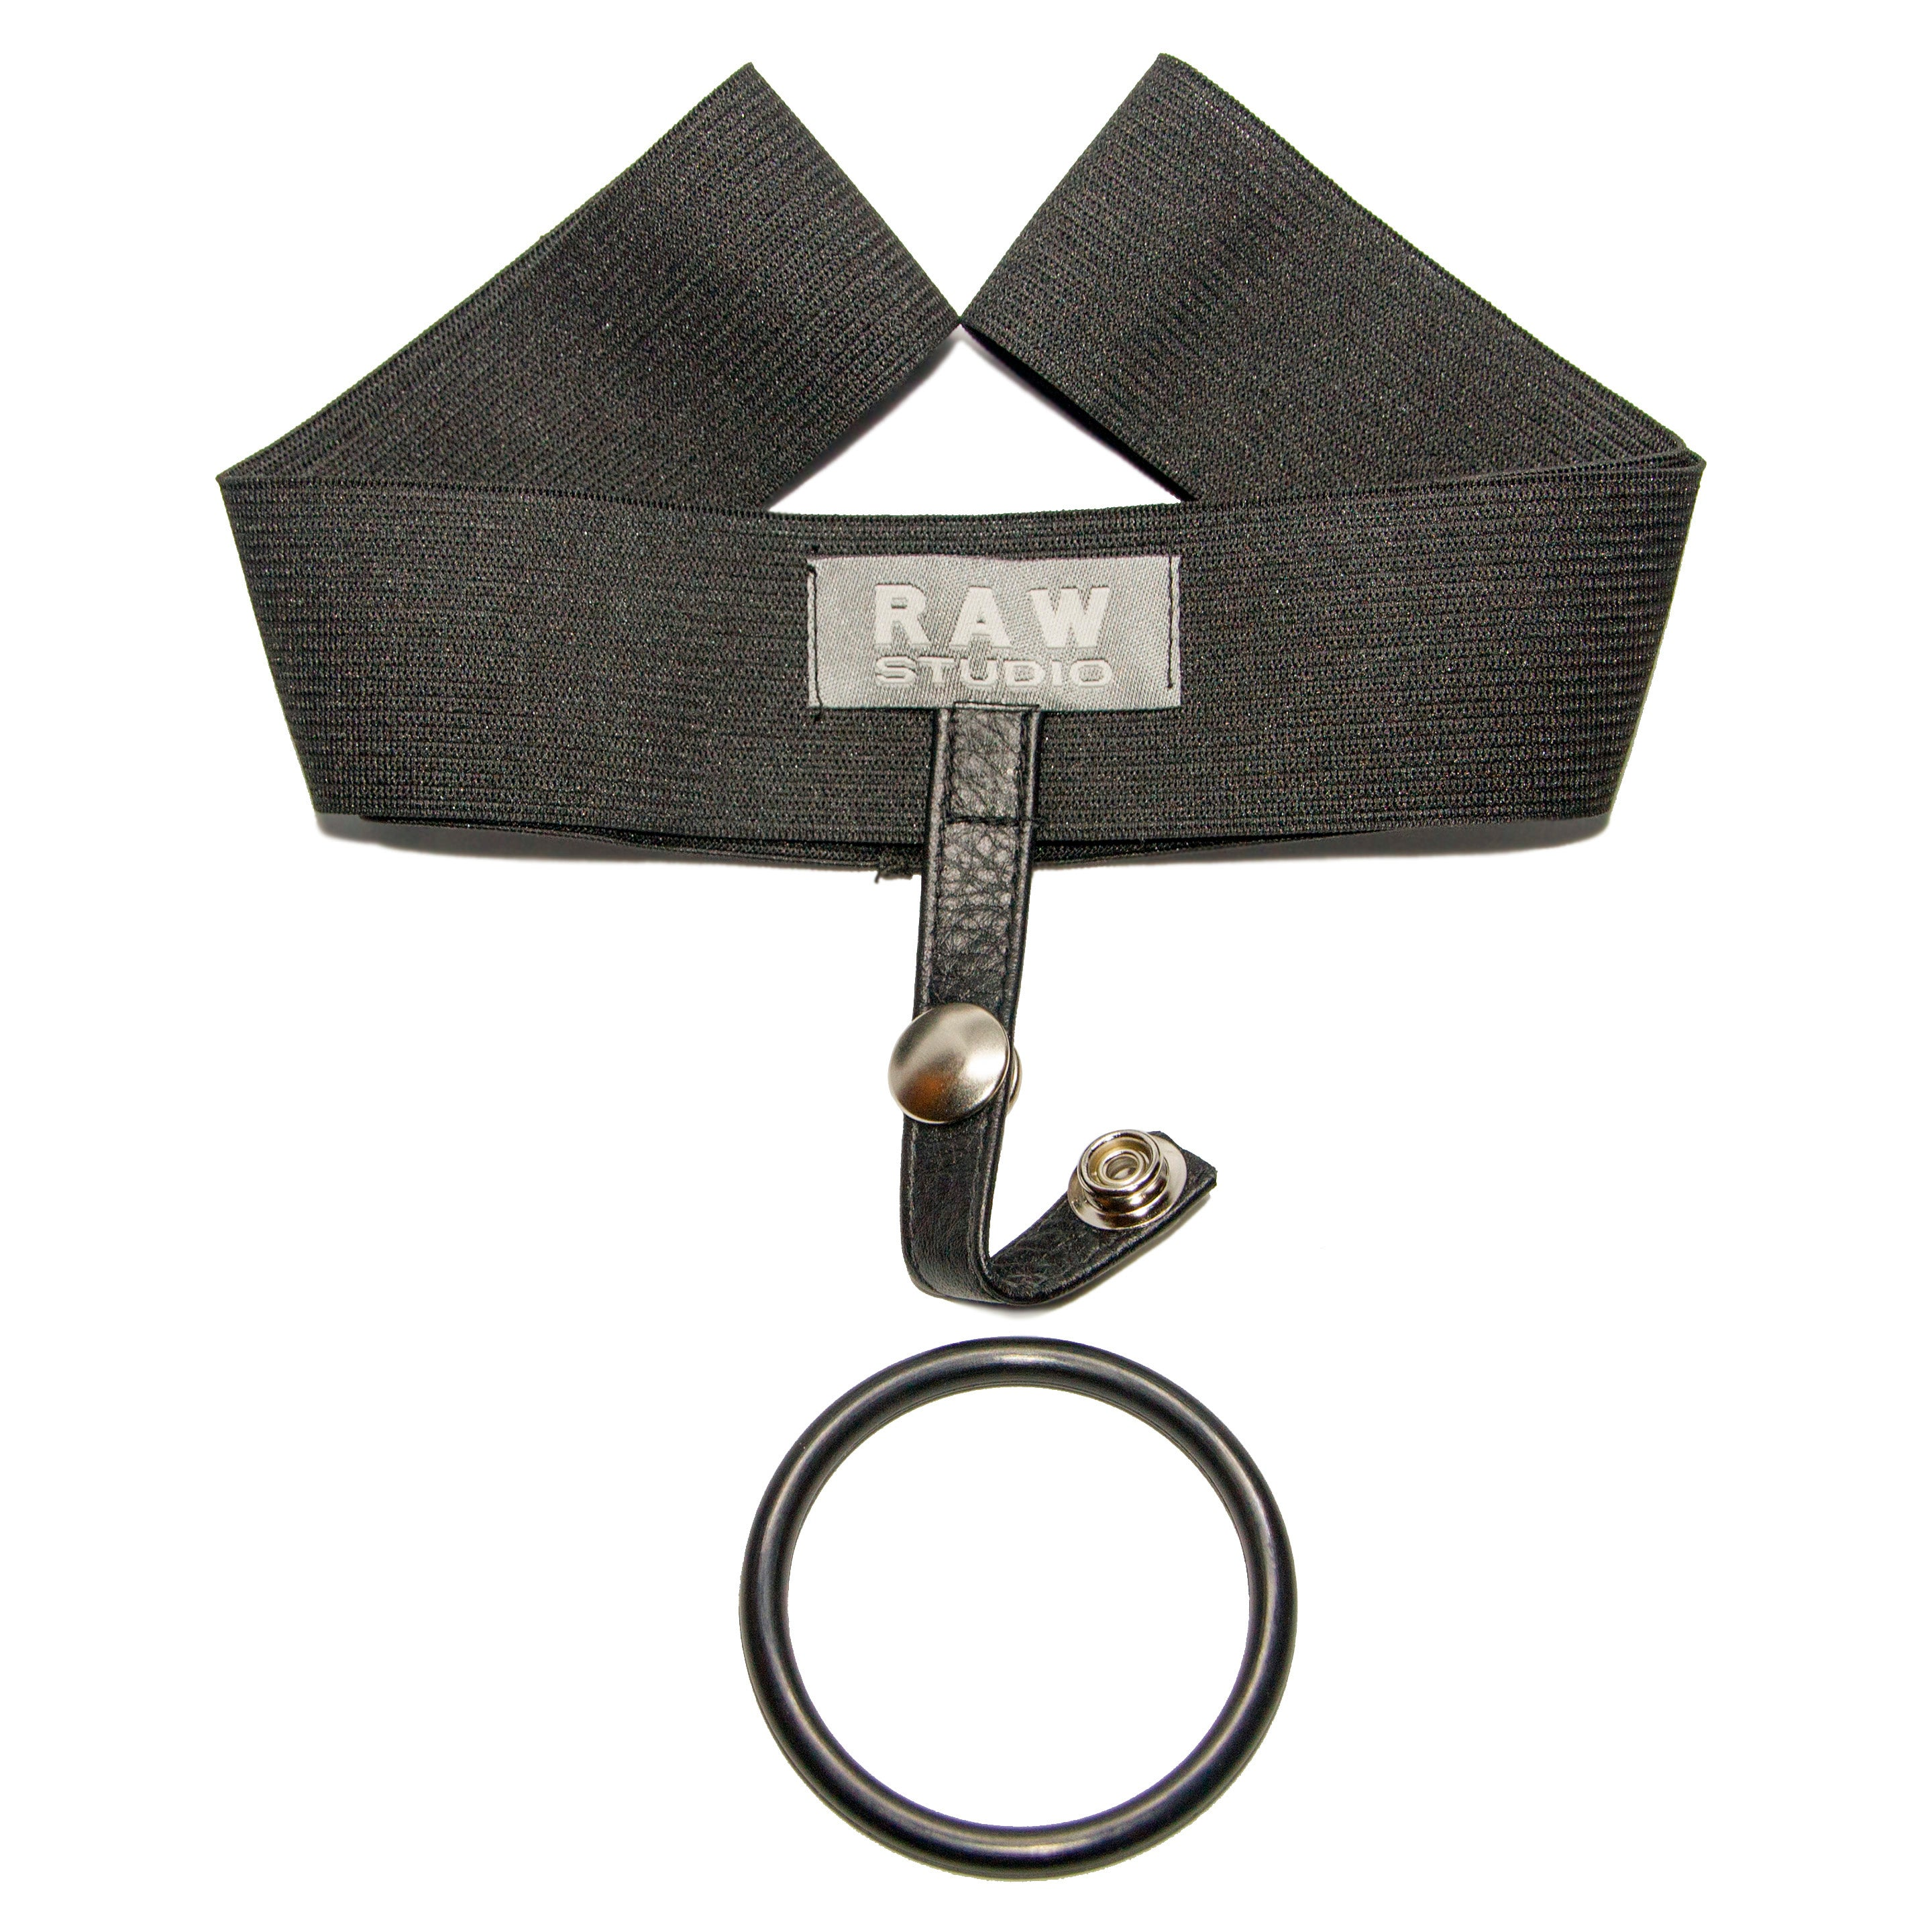 SLING WITH RUBBER C-RING